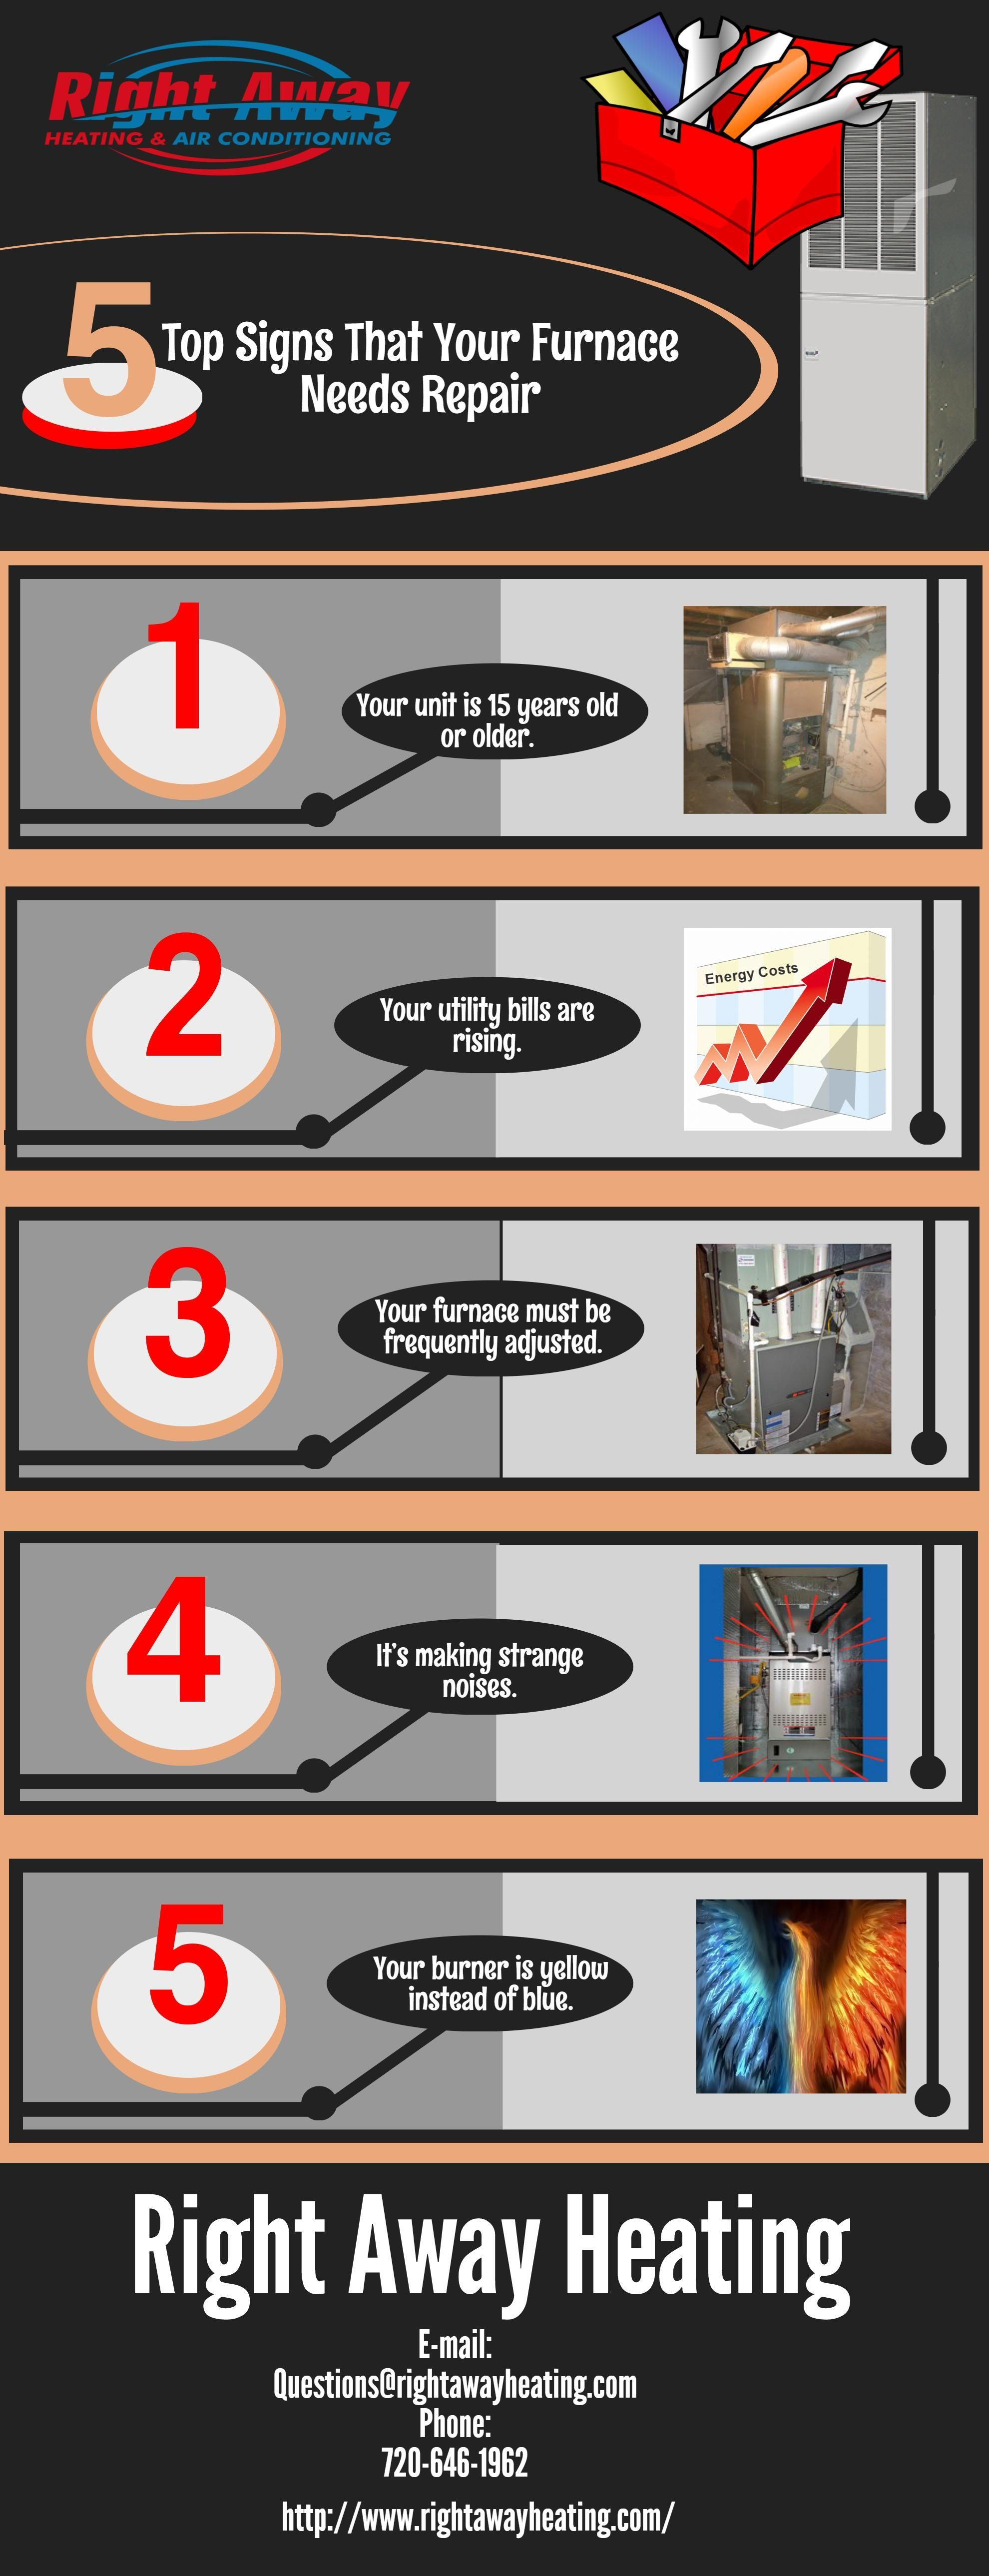 5 Top Signs That Your Furnace Needs Repair Heating